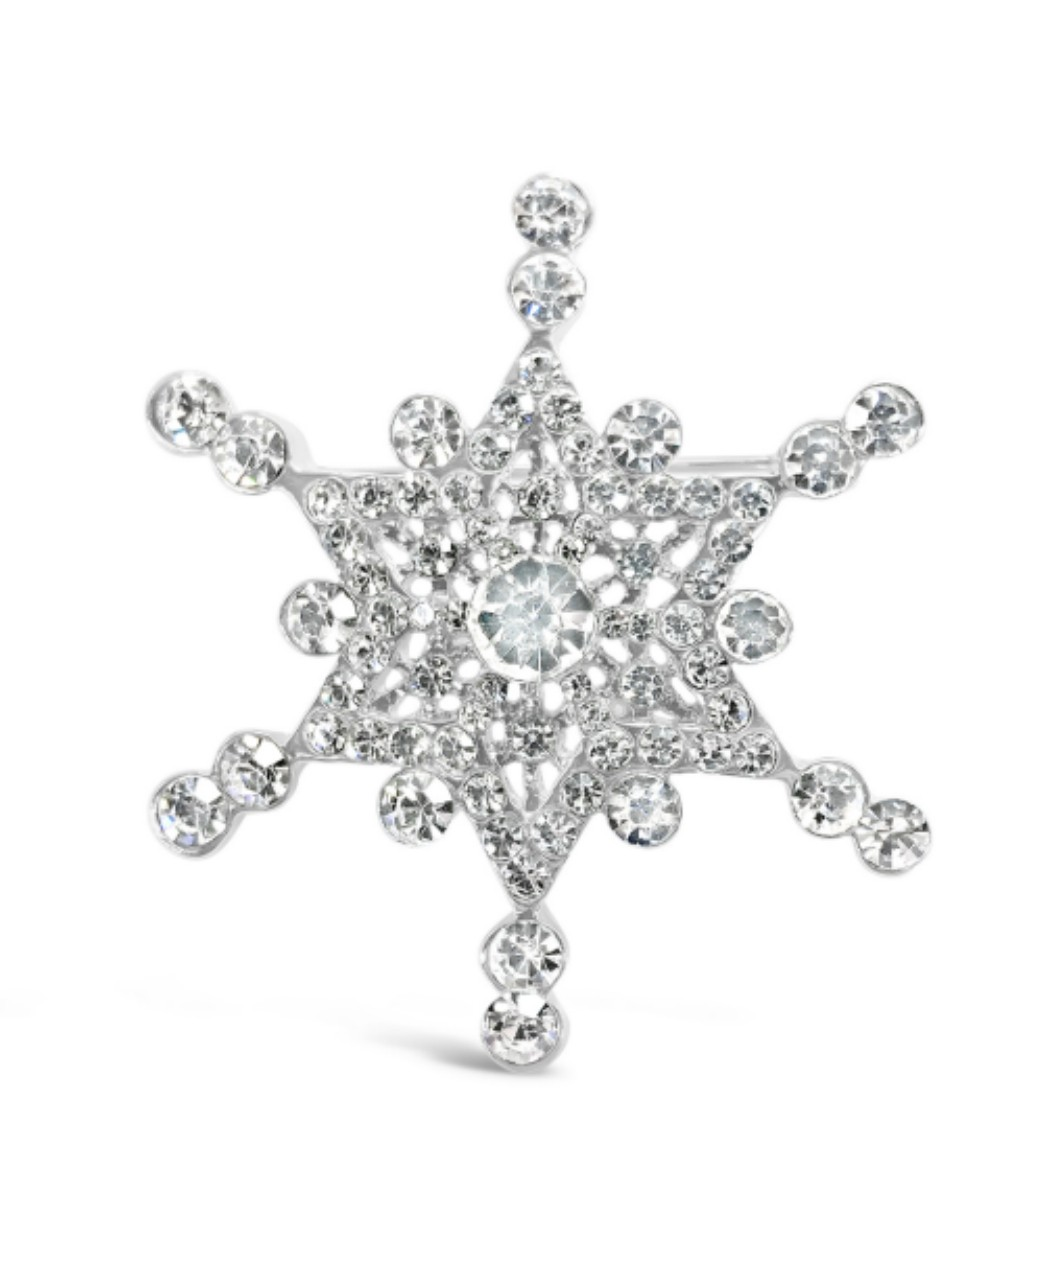 Snowflake Crystal Point Pin